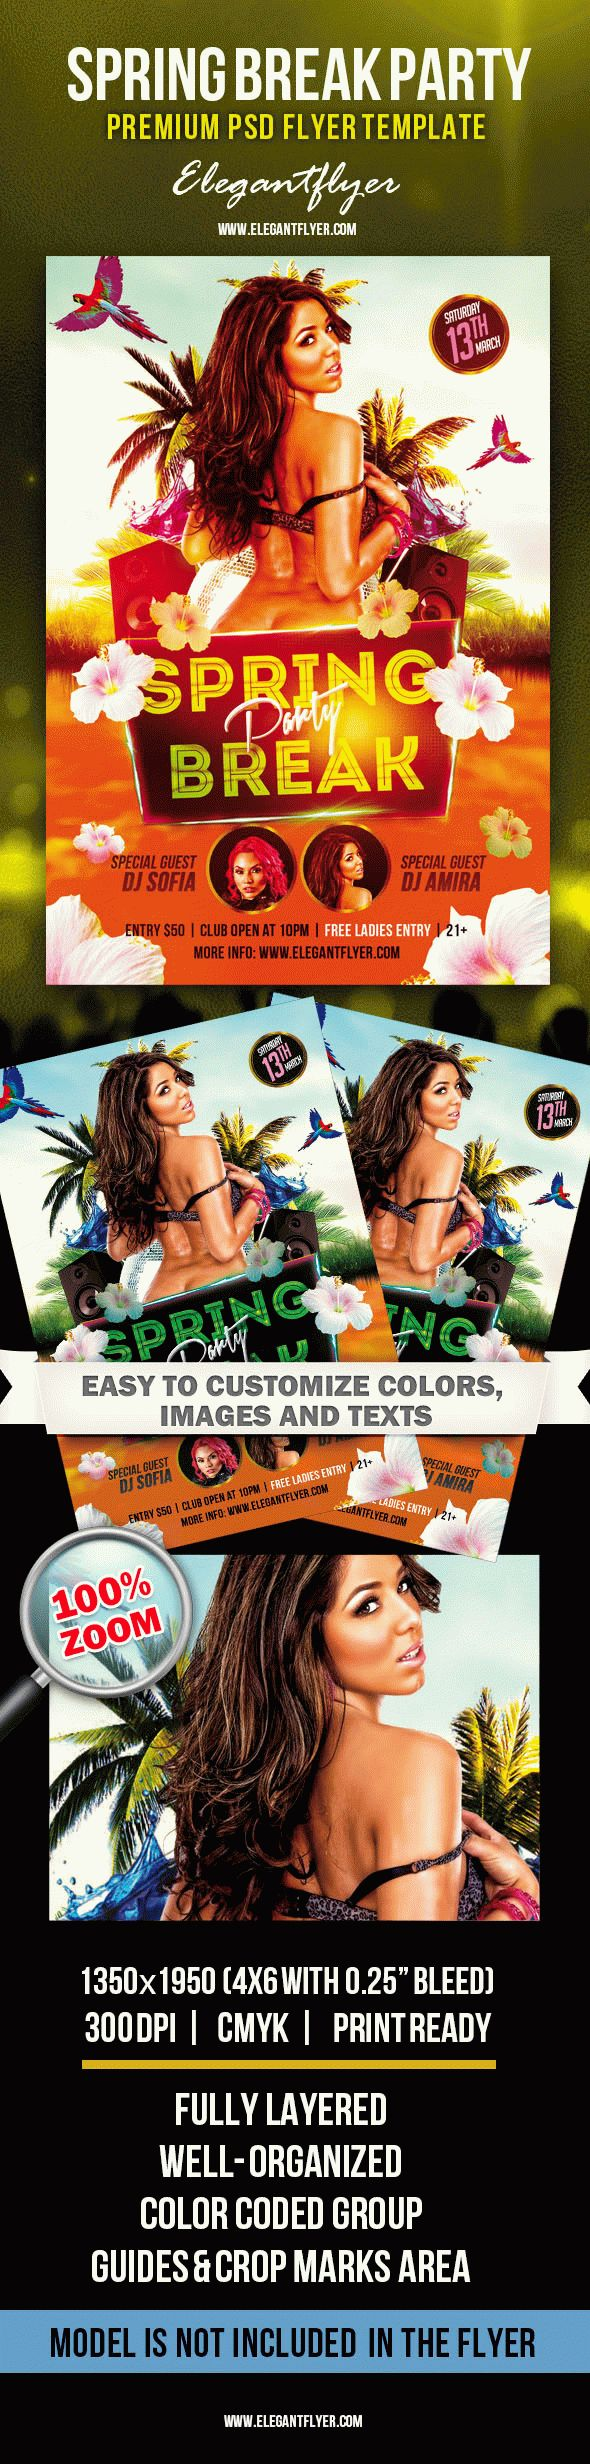 Invitation Club Flyer for Spring Break